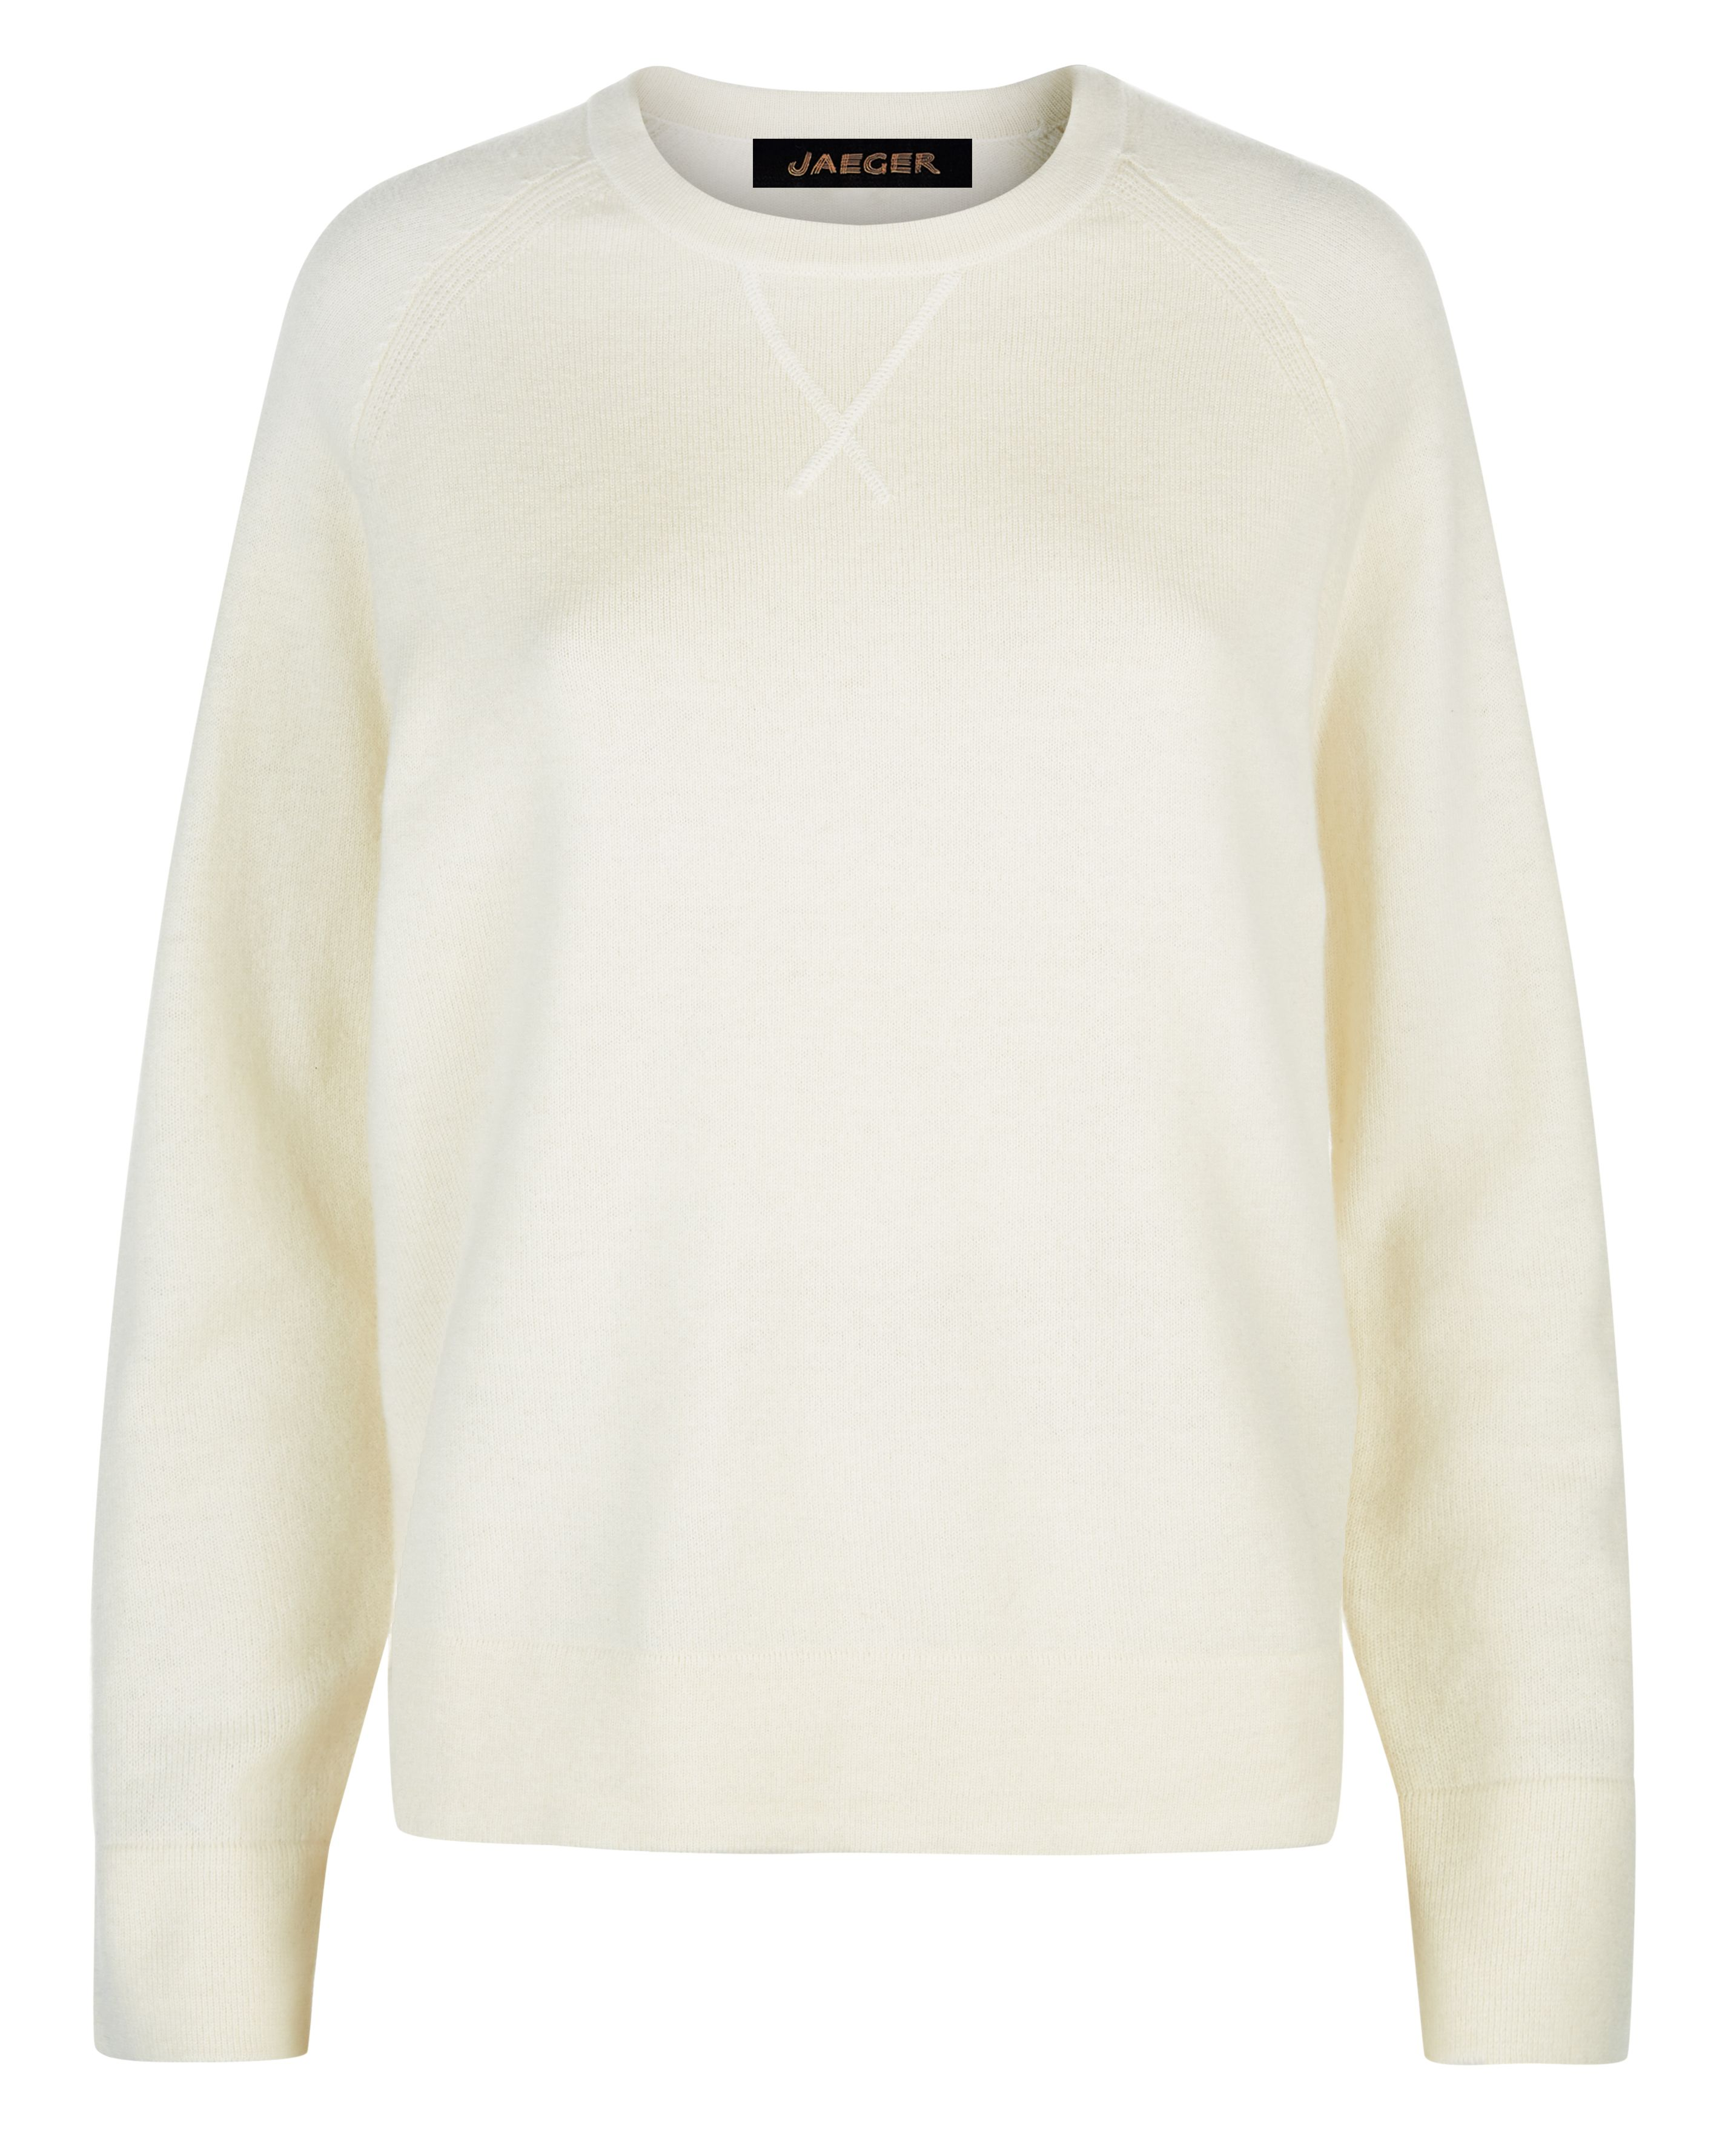 Jaeger Wool Crew Neck Sweater, White